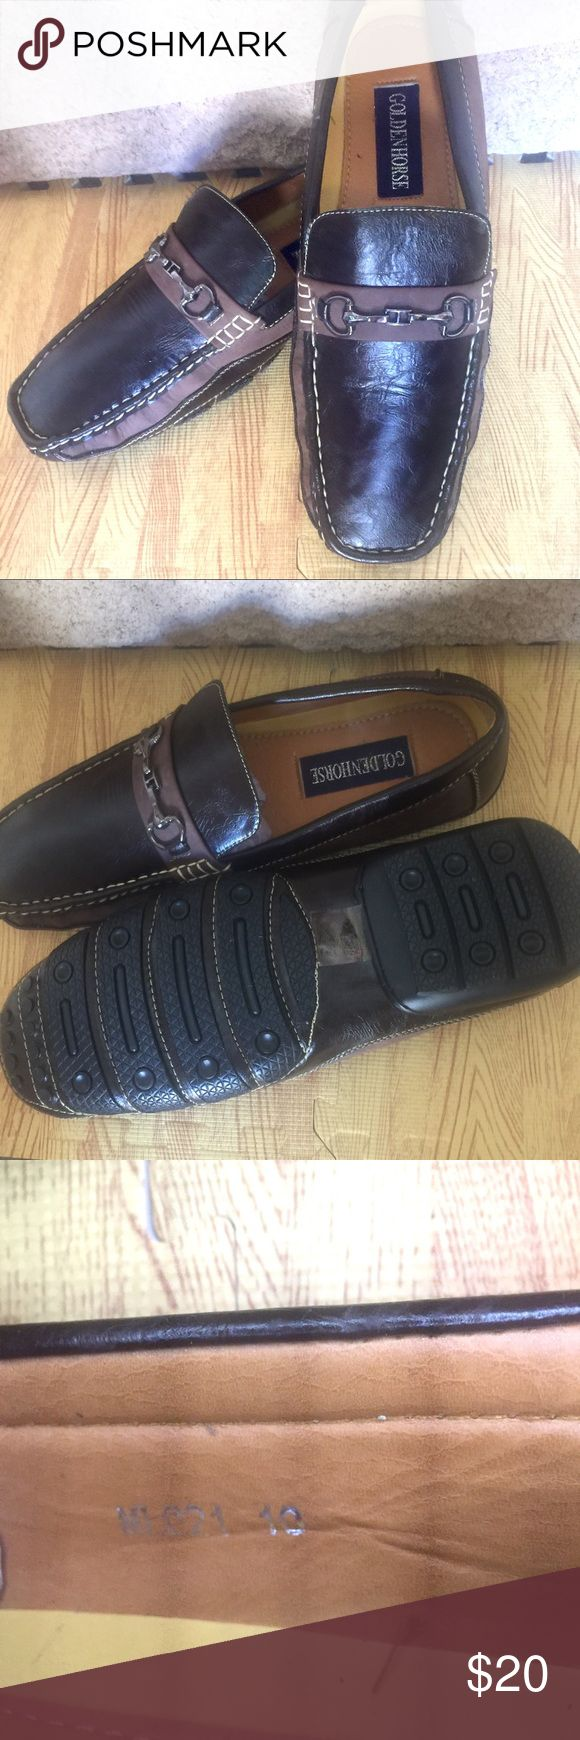 🚘 Men's Driving Shoes 🚙 Men's, brown, size 10, driving shoes. Never worn. Synthetic uppers & soles. Goldenhorse Shoes Loafers & Slip-Ons